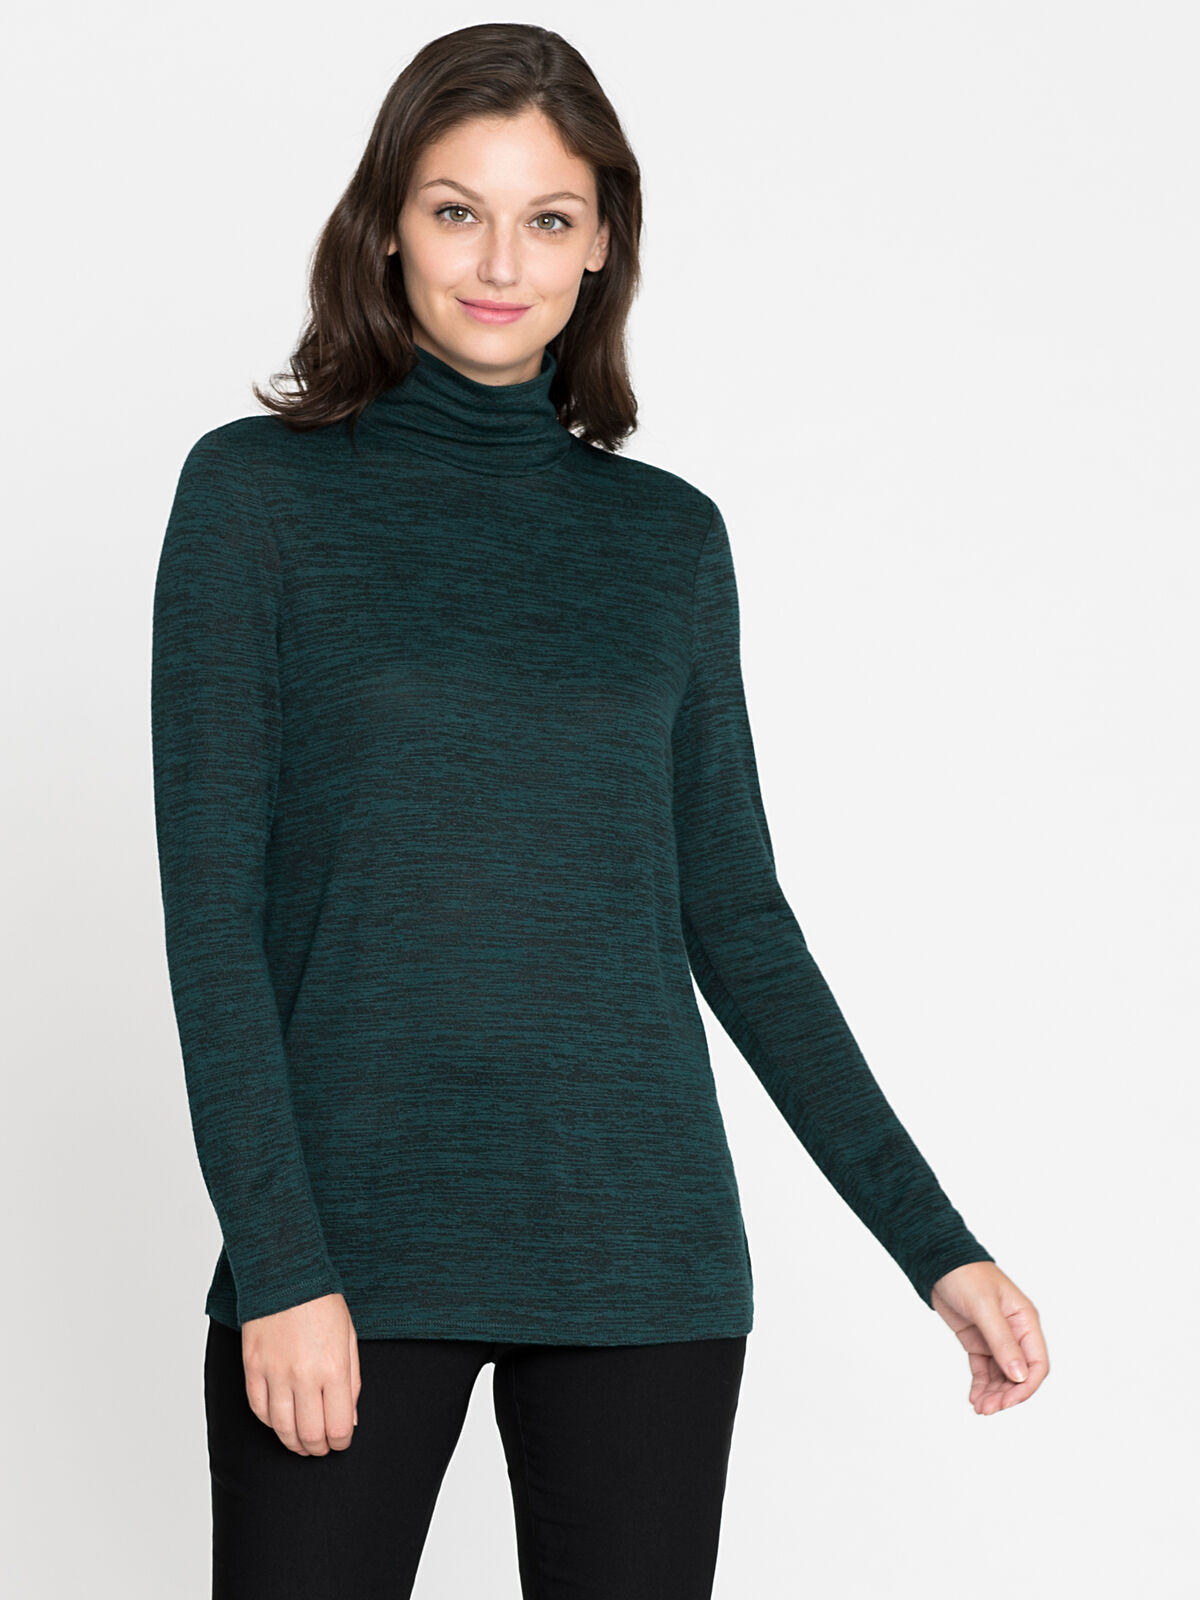 Every Occasion New Mock Top